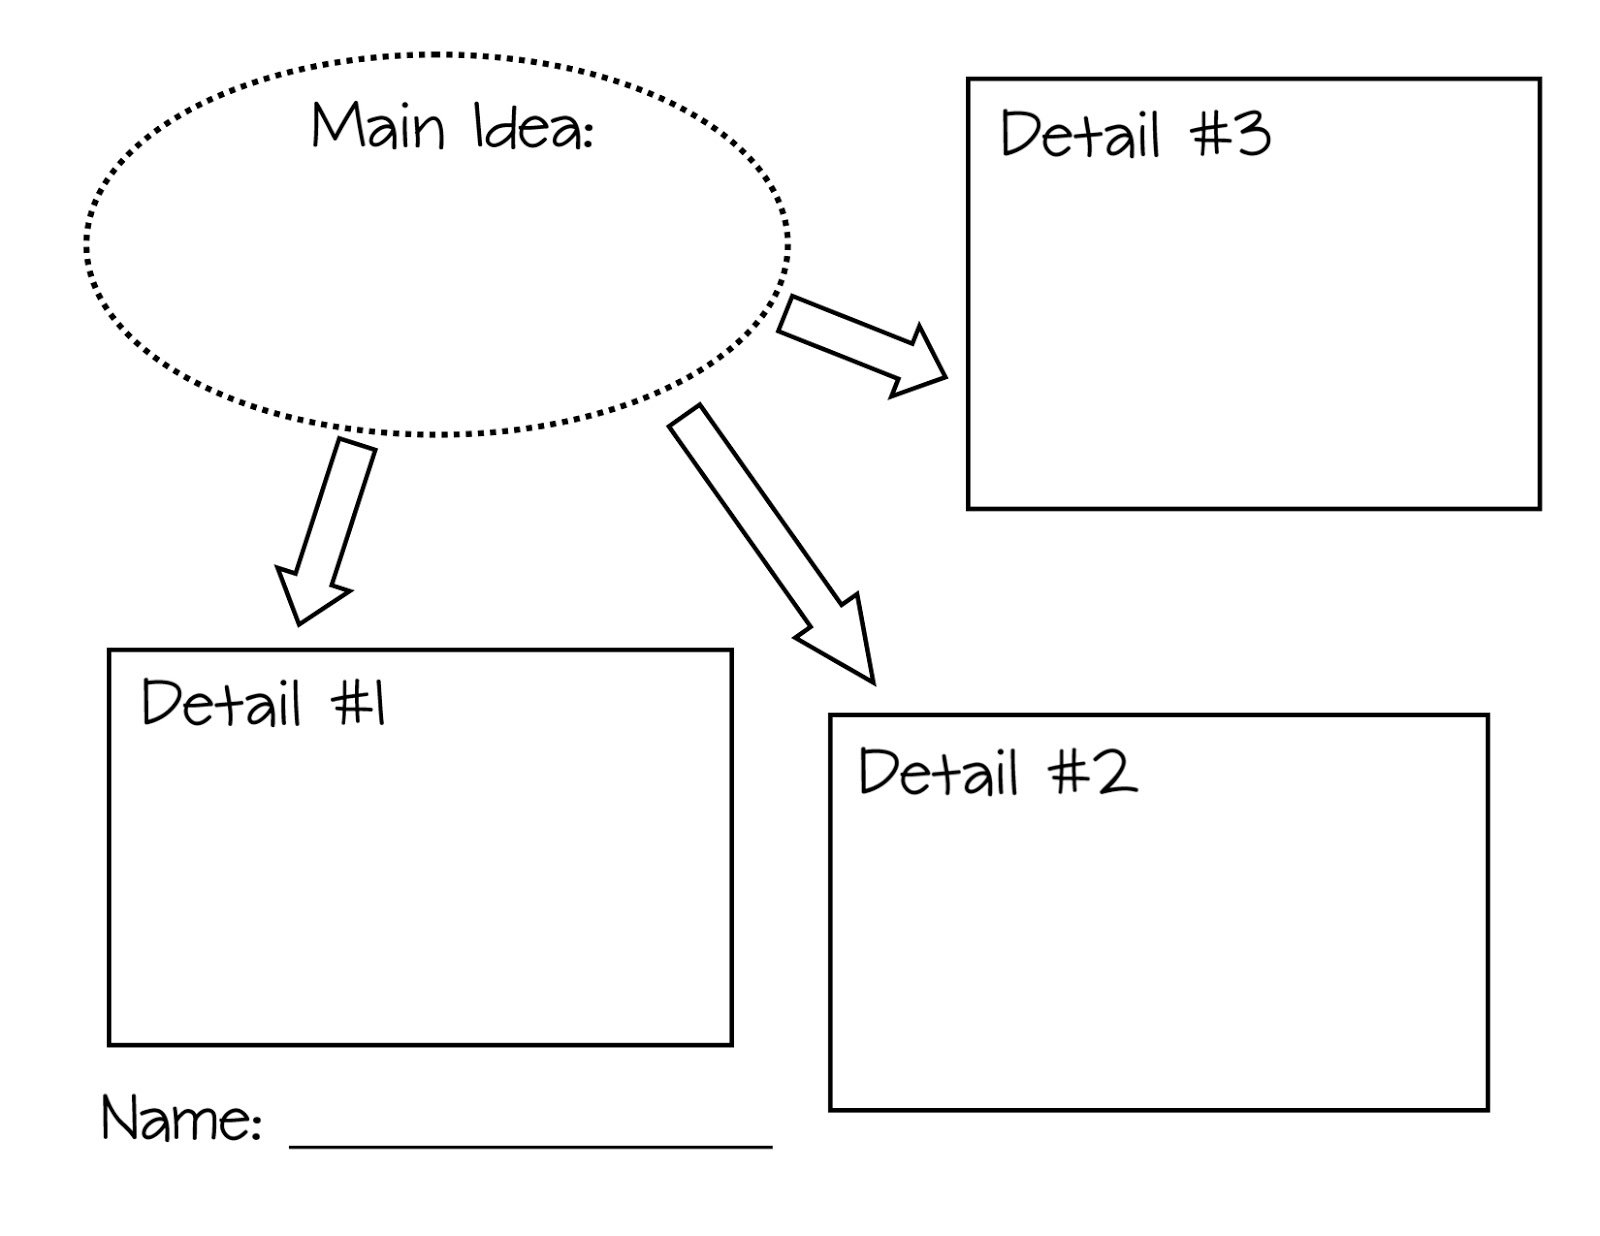 10 Spectacular Main Idea Detail Graphic Organizer 30 images of charts for supporting details template boatsee 8